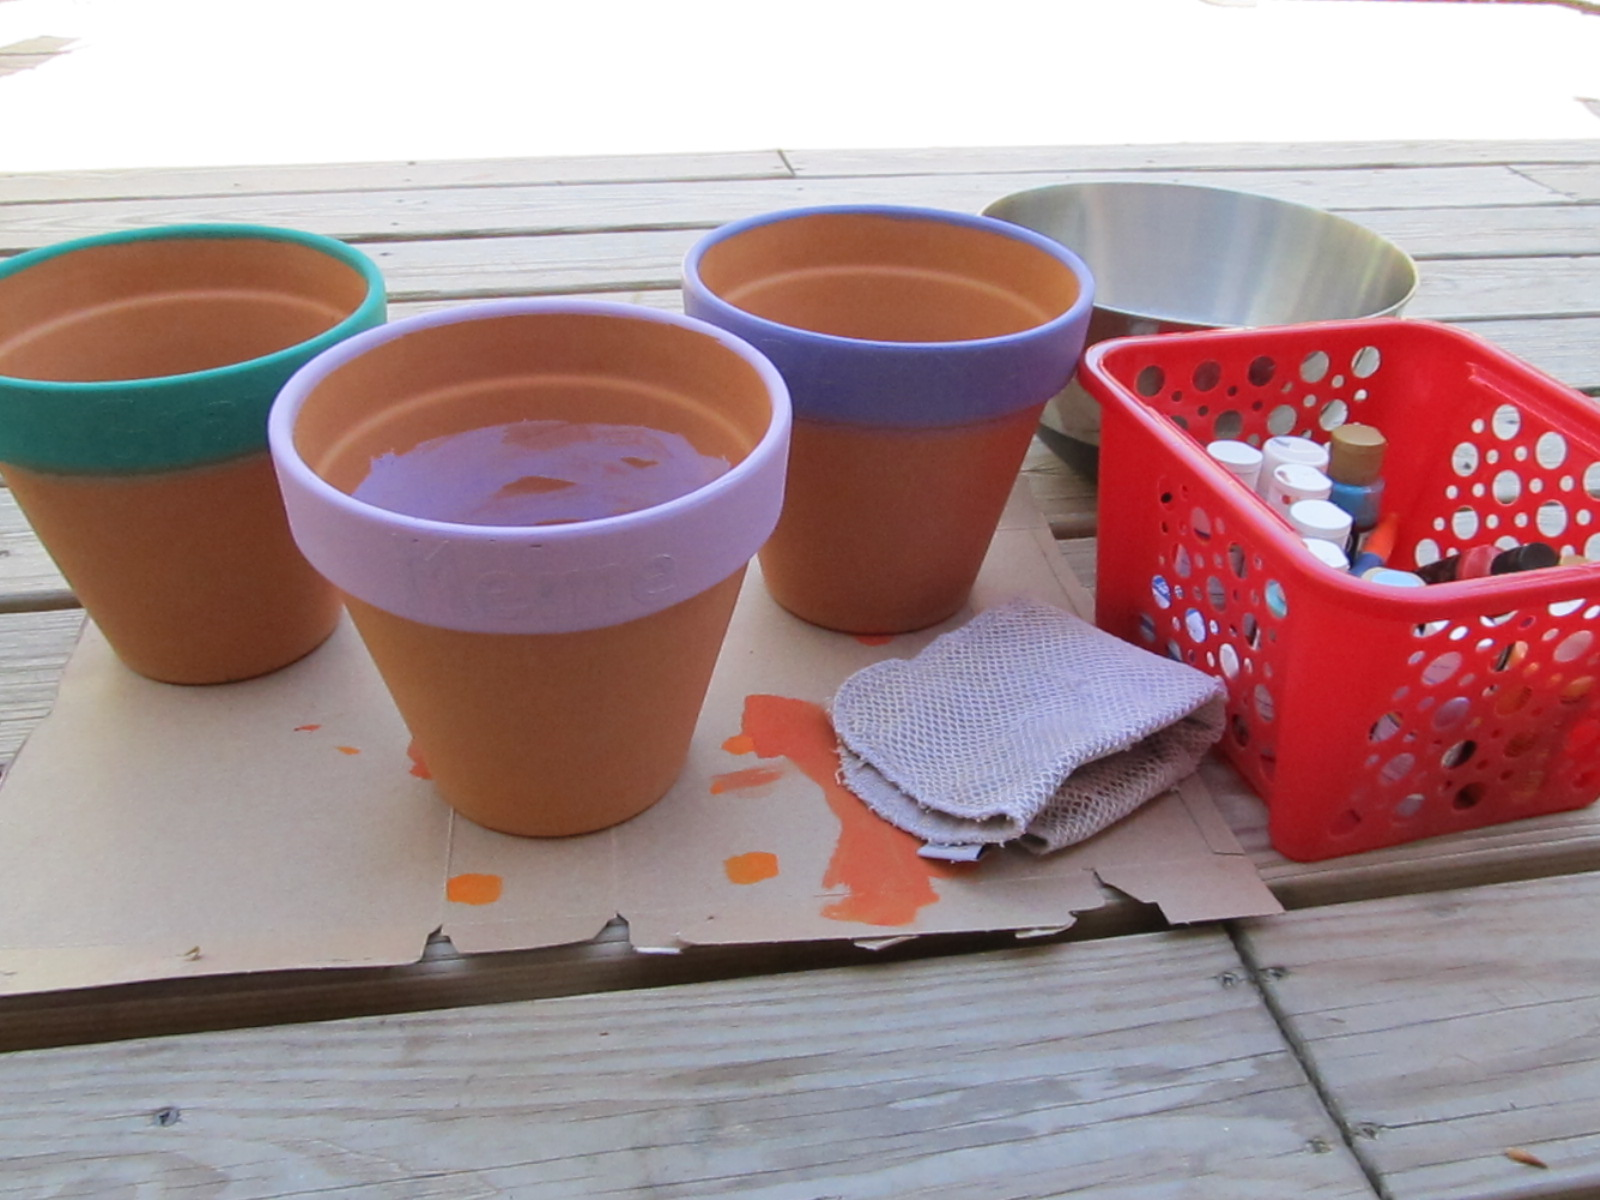 Again using craft acrylic paint we painted Big Brother's hands and made  prints on the sides of the pots. We set up a bowl of soapy, warm water and  rags for ...